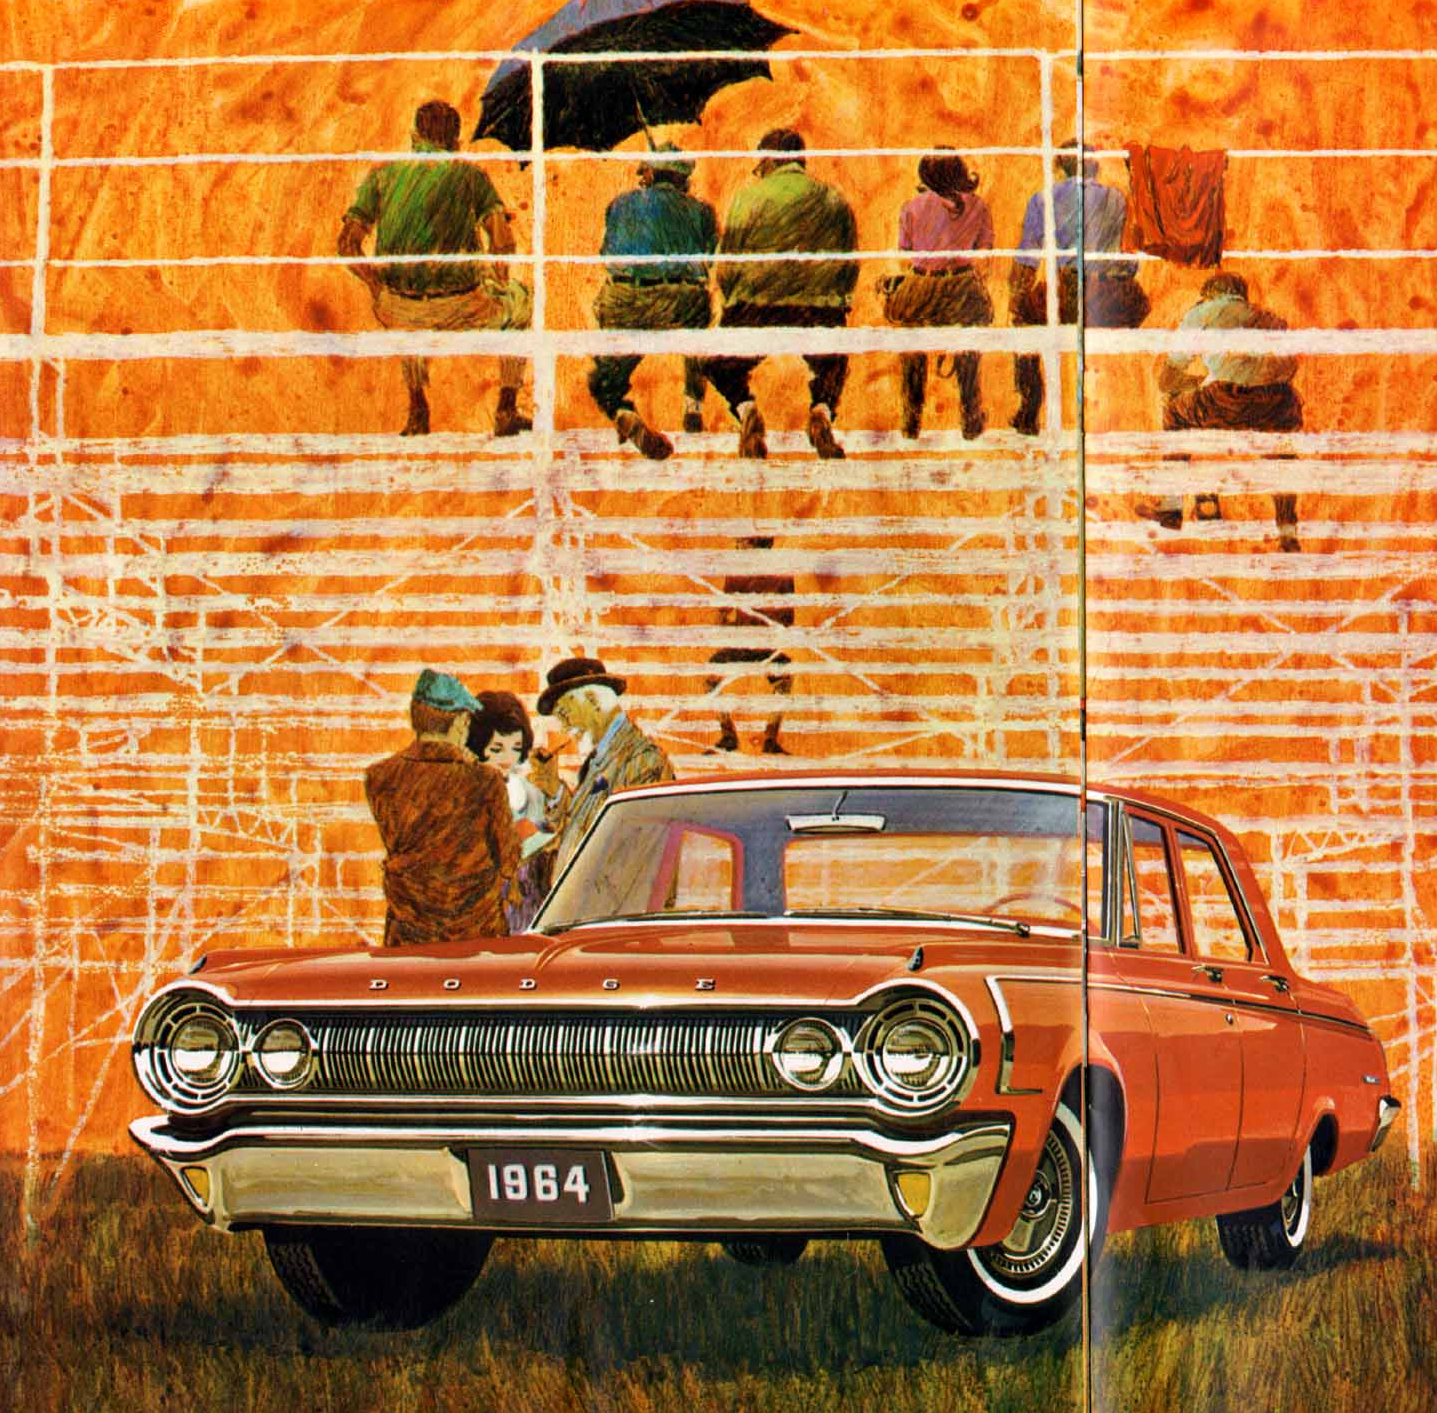 Advertisement for the 1964 Dodge Polara.